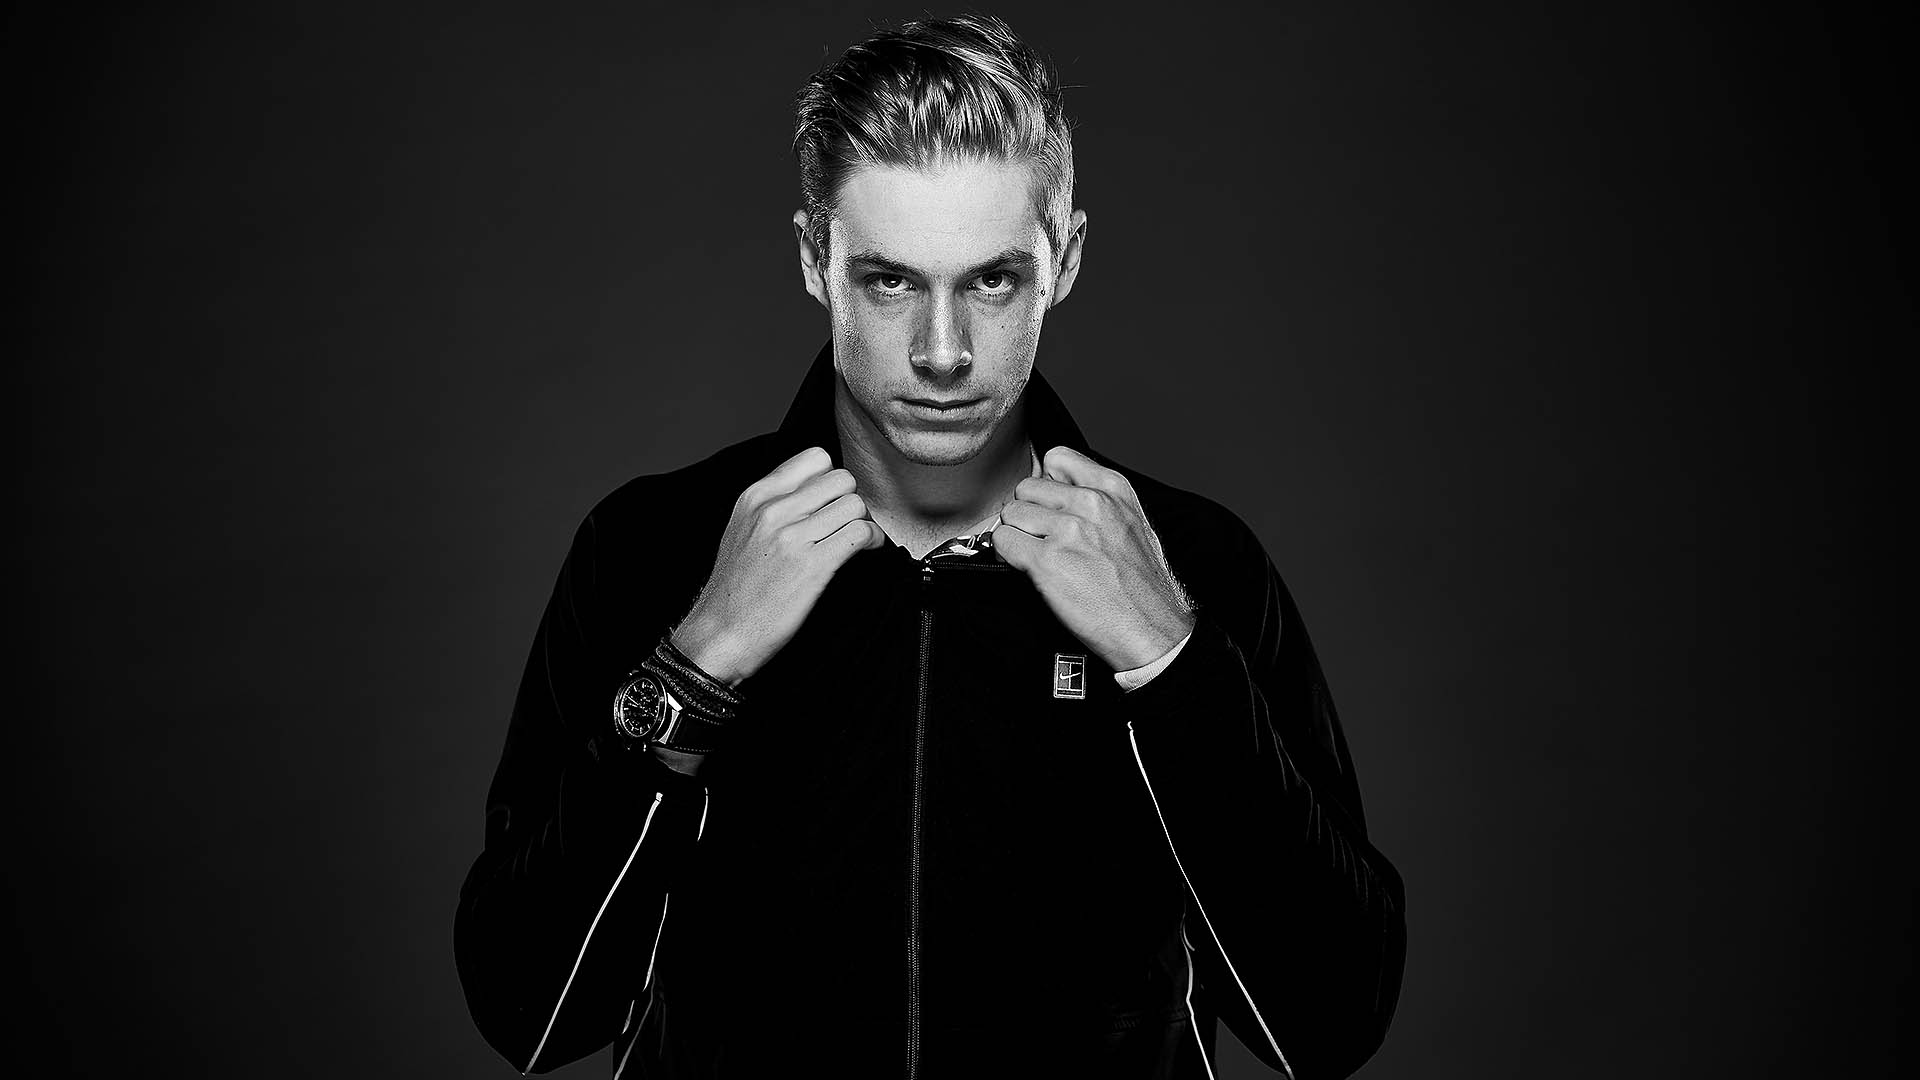 Denis Shapovalov's latest single 'Drip' will be released on September 18.